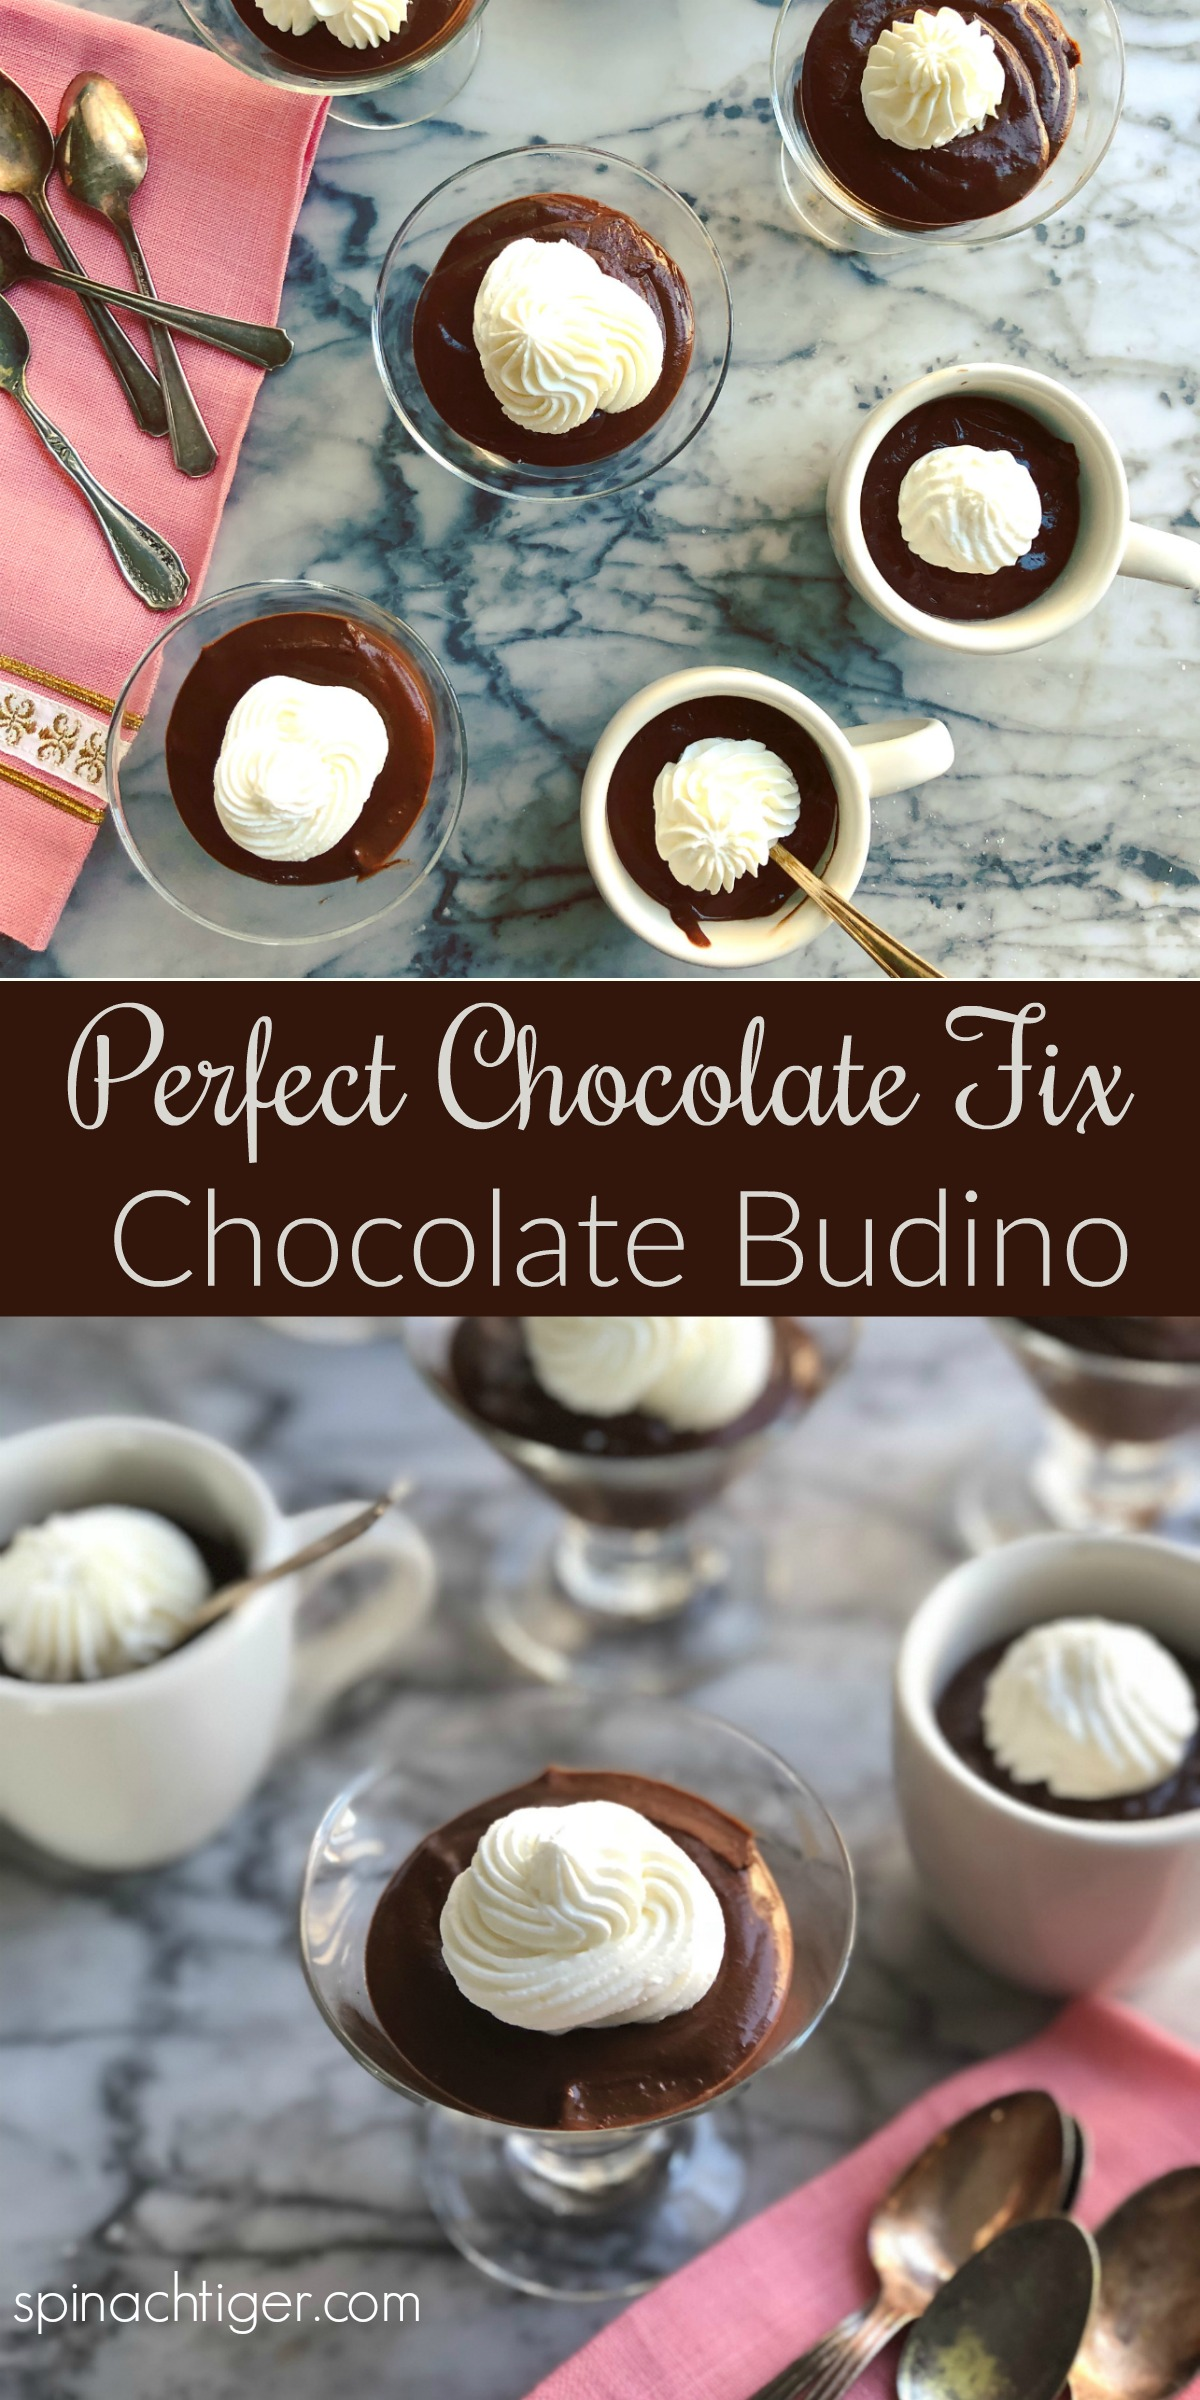 Chocolate Budino with a sugar free option. Thick delicious Italian chocolate pudding. via @angelaroberts